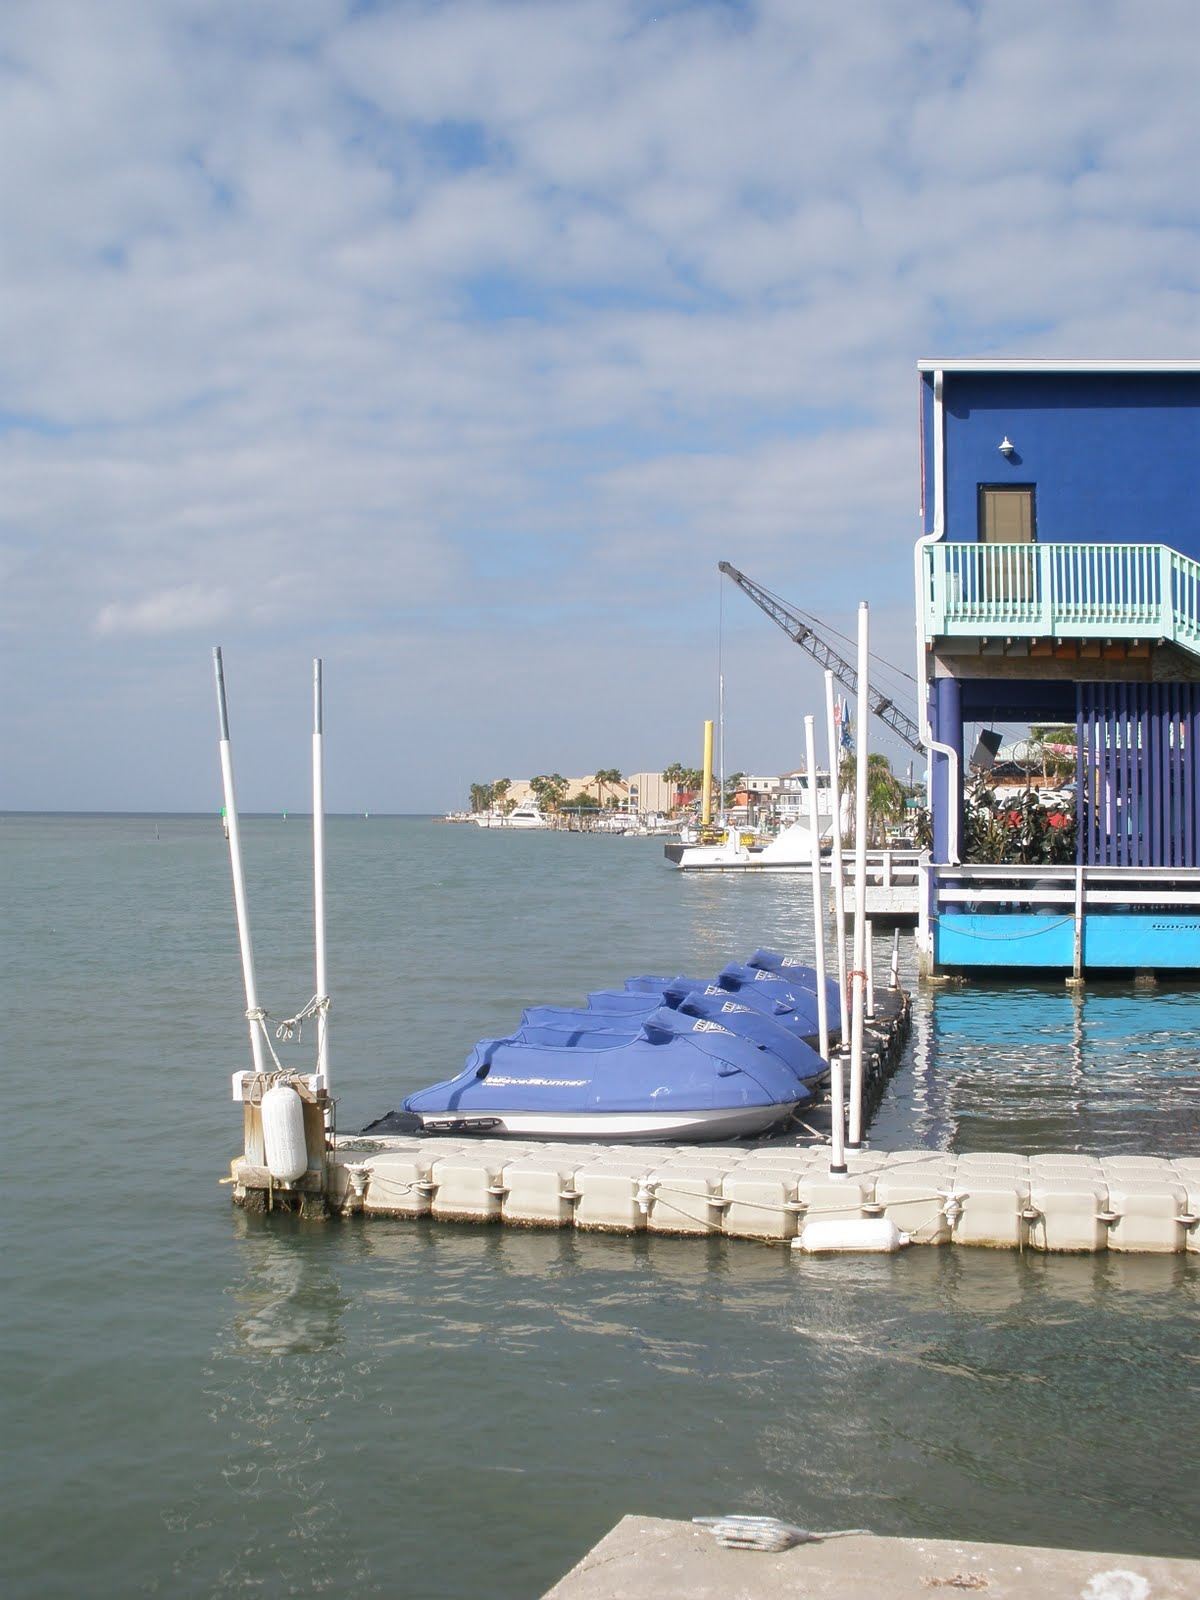 And I Wander Port Isabel And South Padre Island